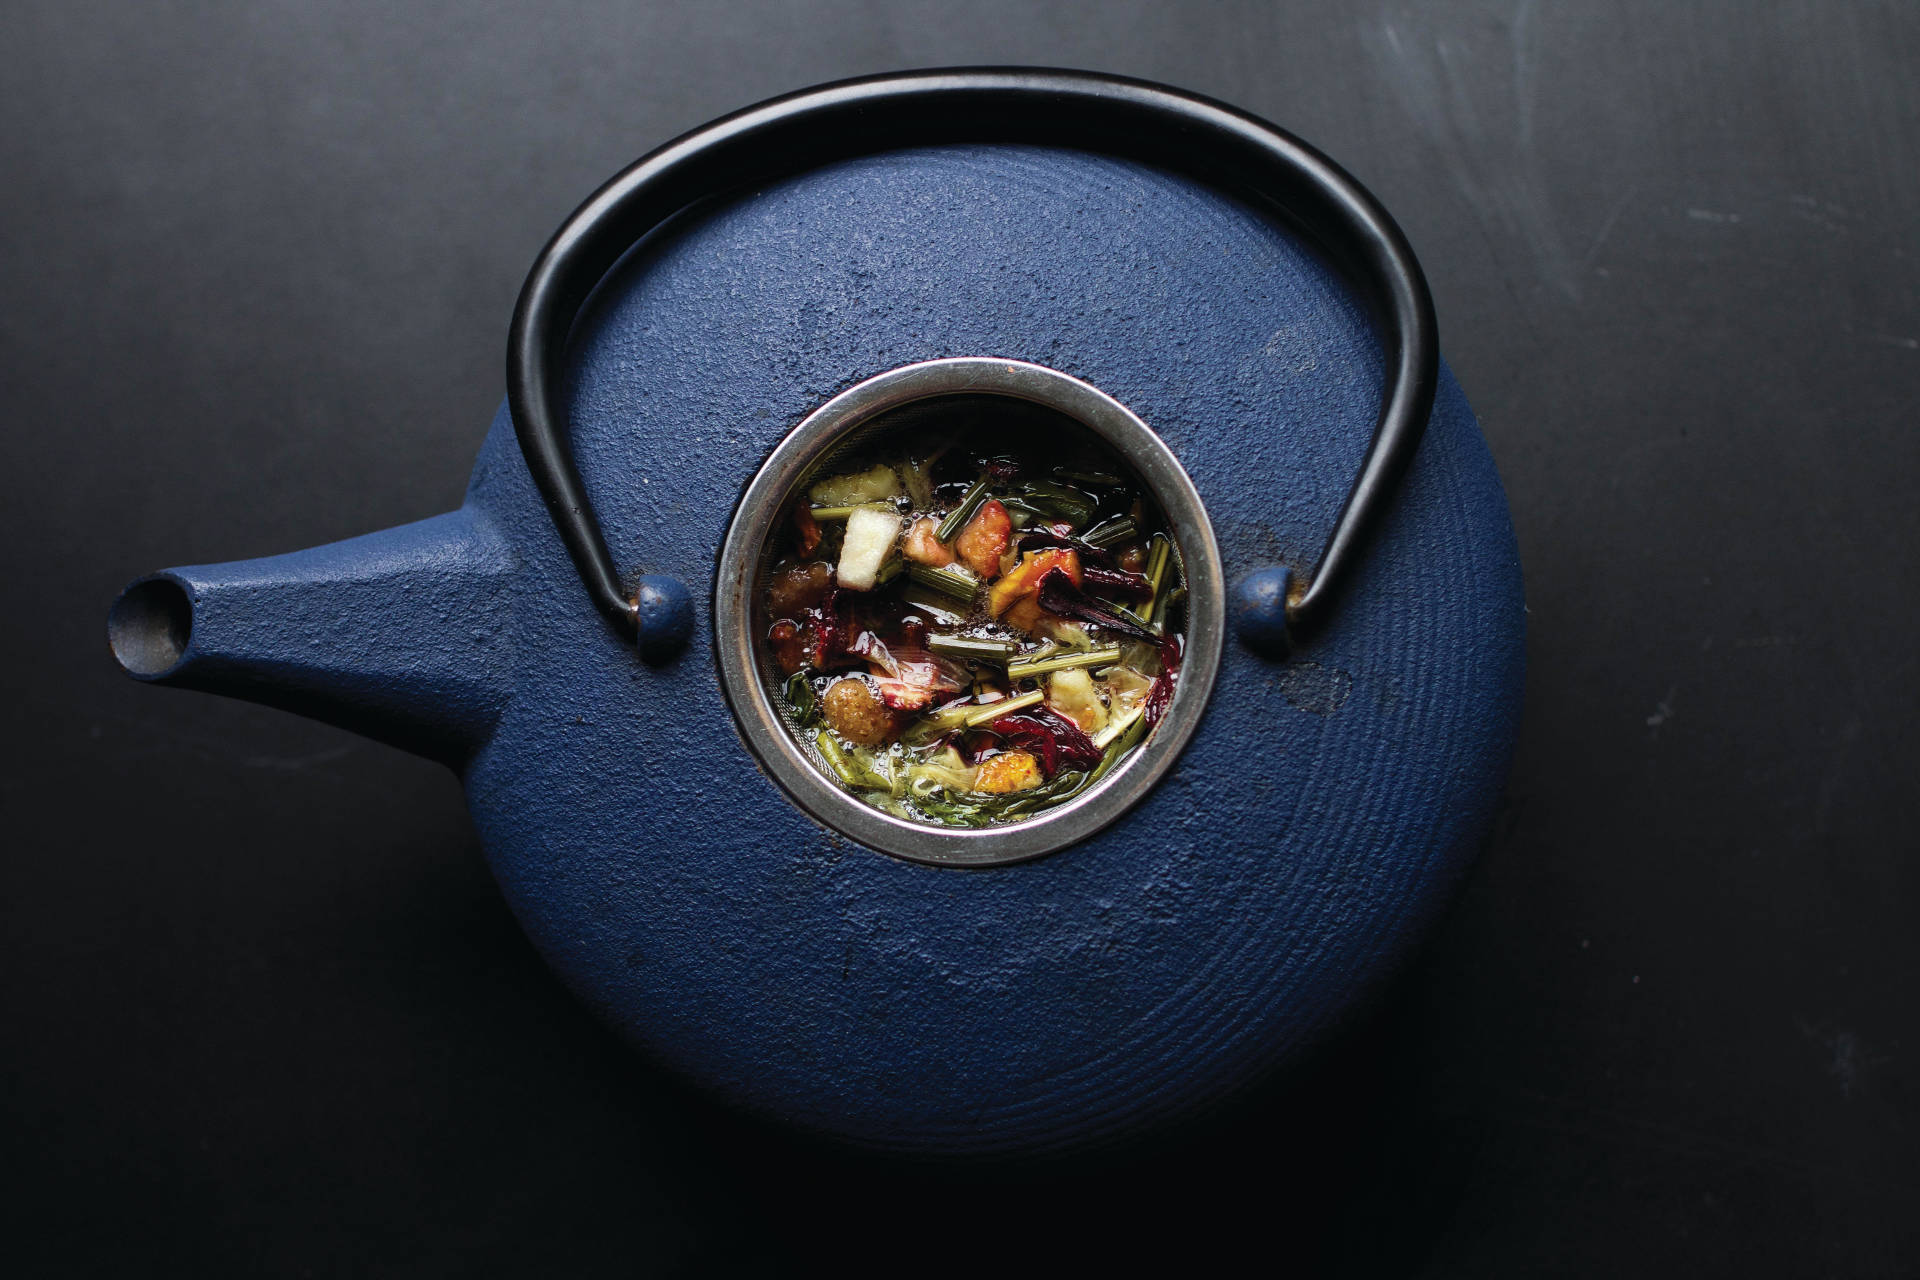 Jilly's Fine Leaf Tea is showcased in a gorgeous ceramic teapot